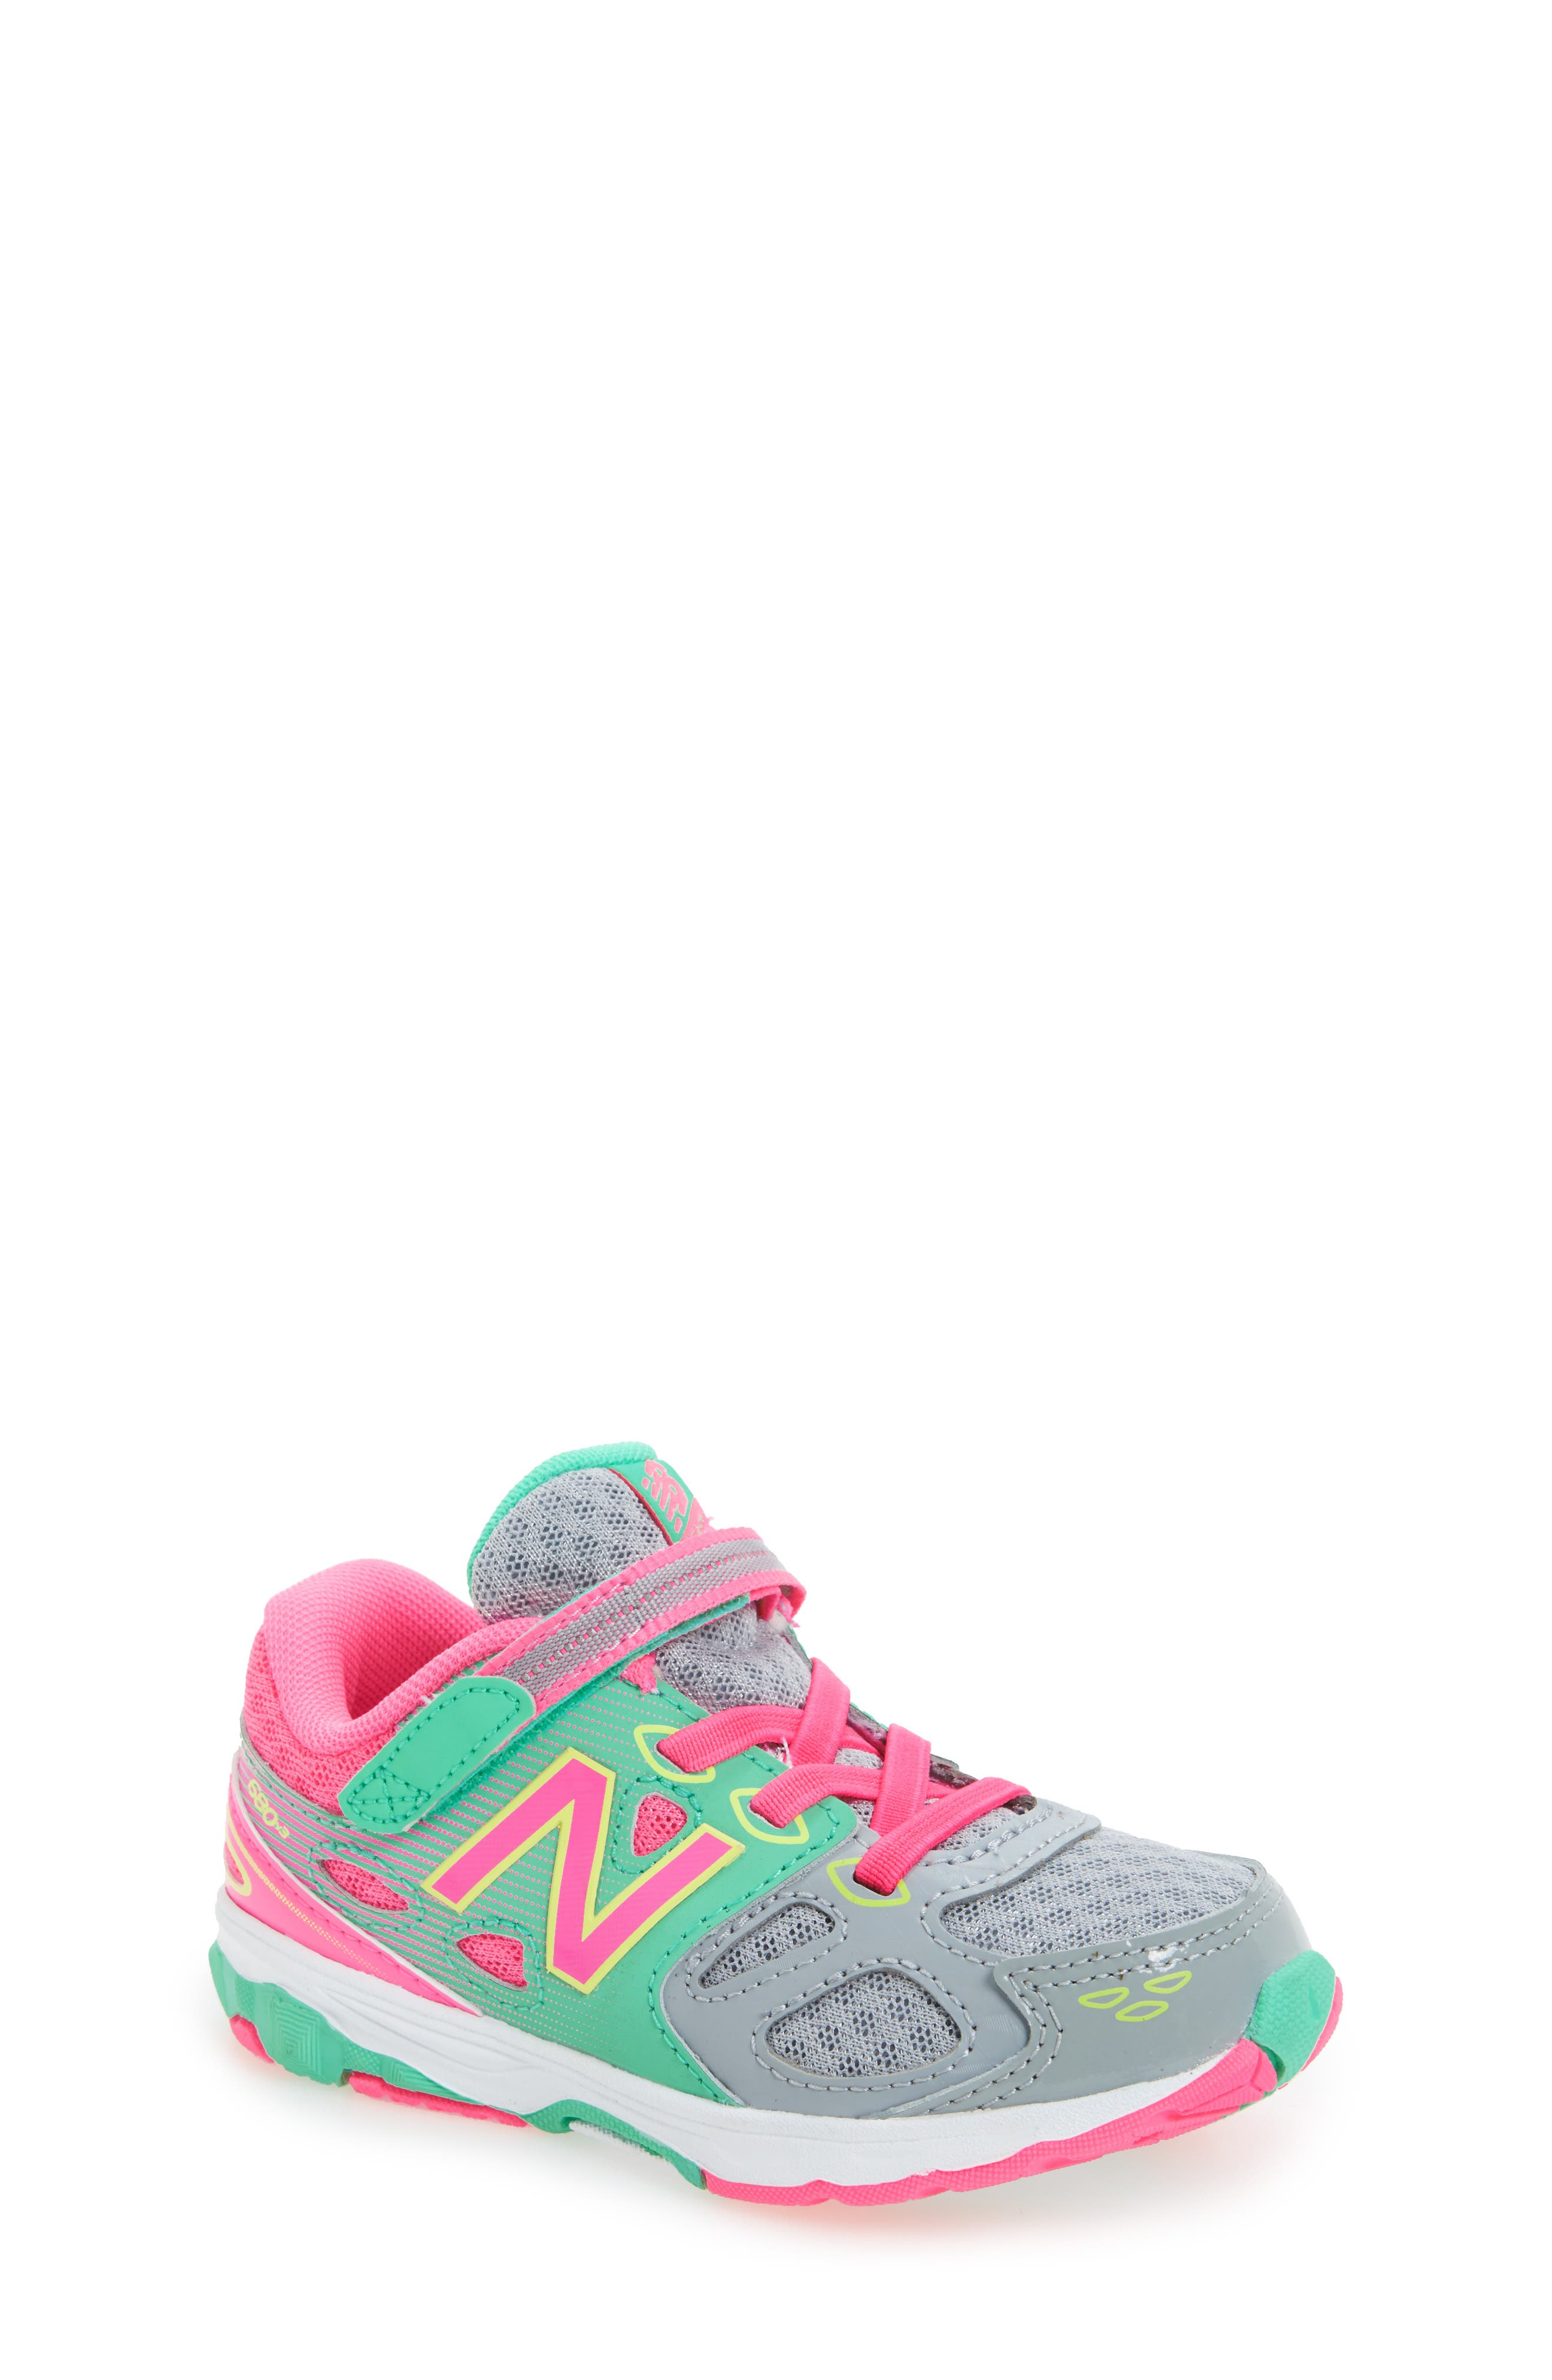 Main Image - New Balance 680v3 Sneaker (Baby, Walker, Toddler, Little Kid & Big Kid)